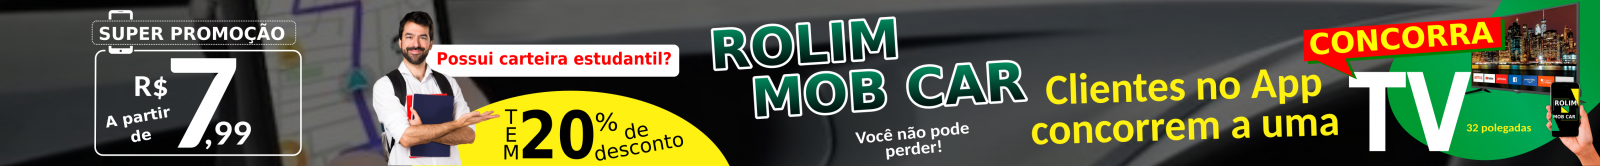 Rolim Mob Car